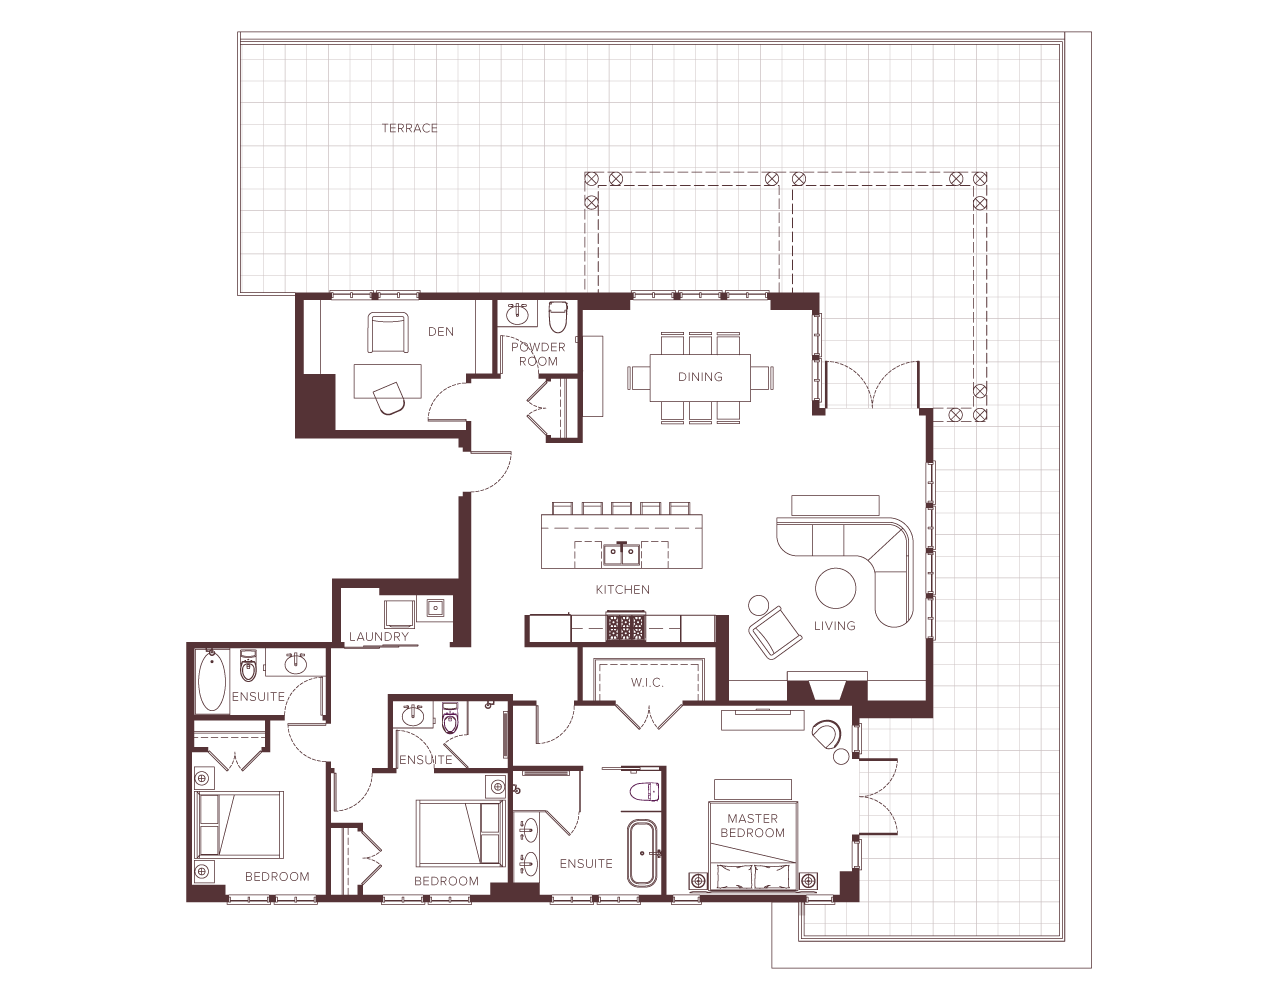 Chateau Laurier penthouse floorplan.